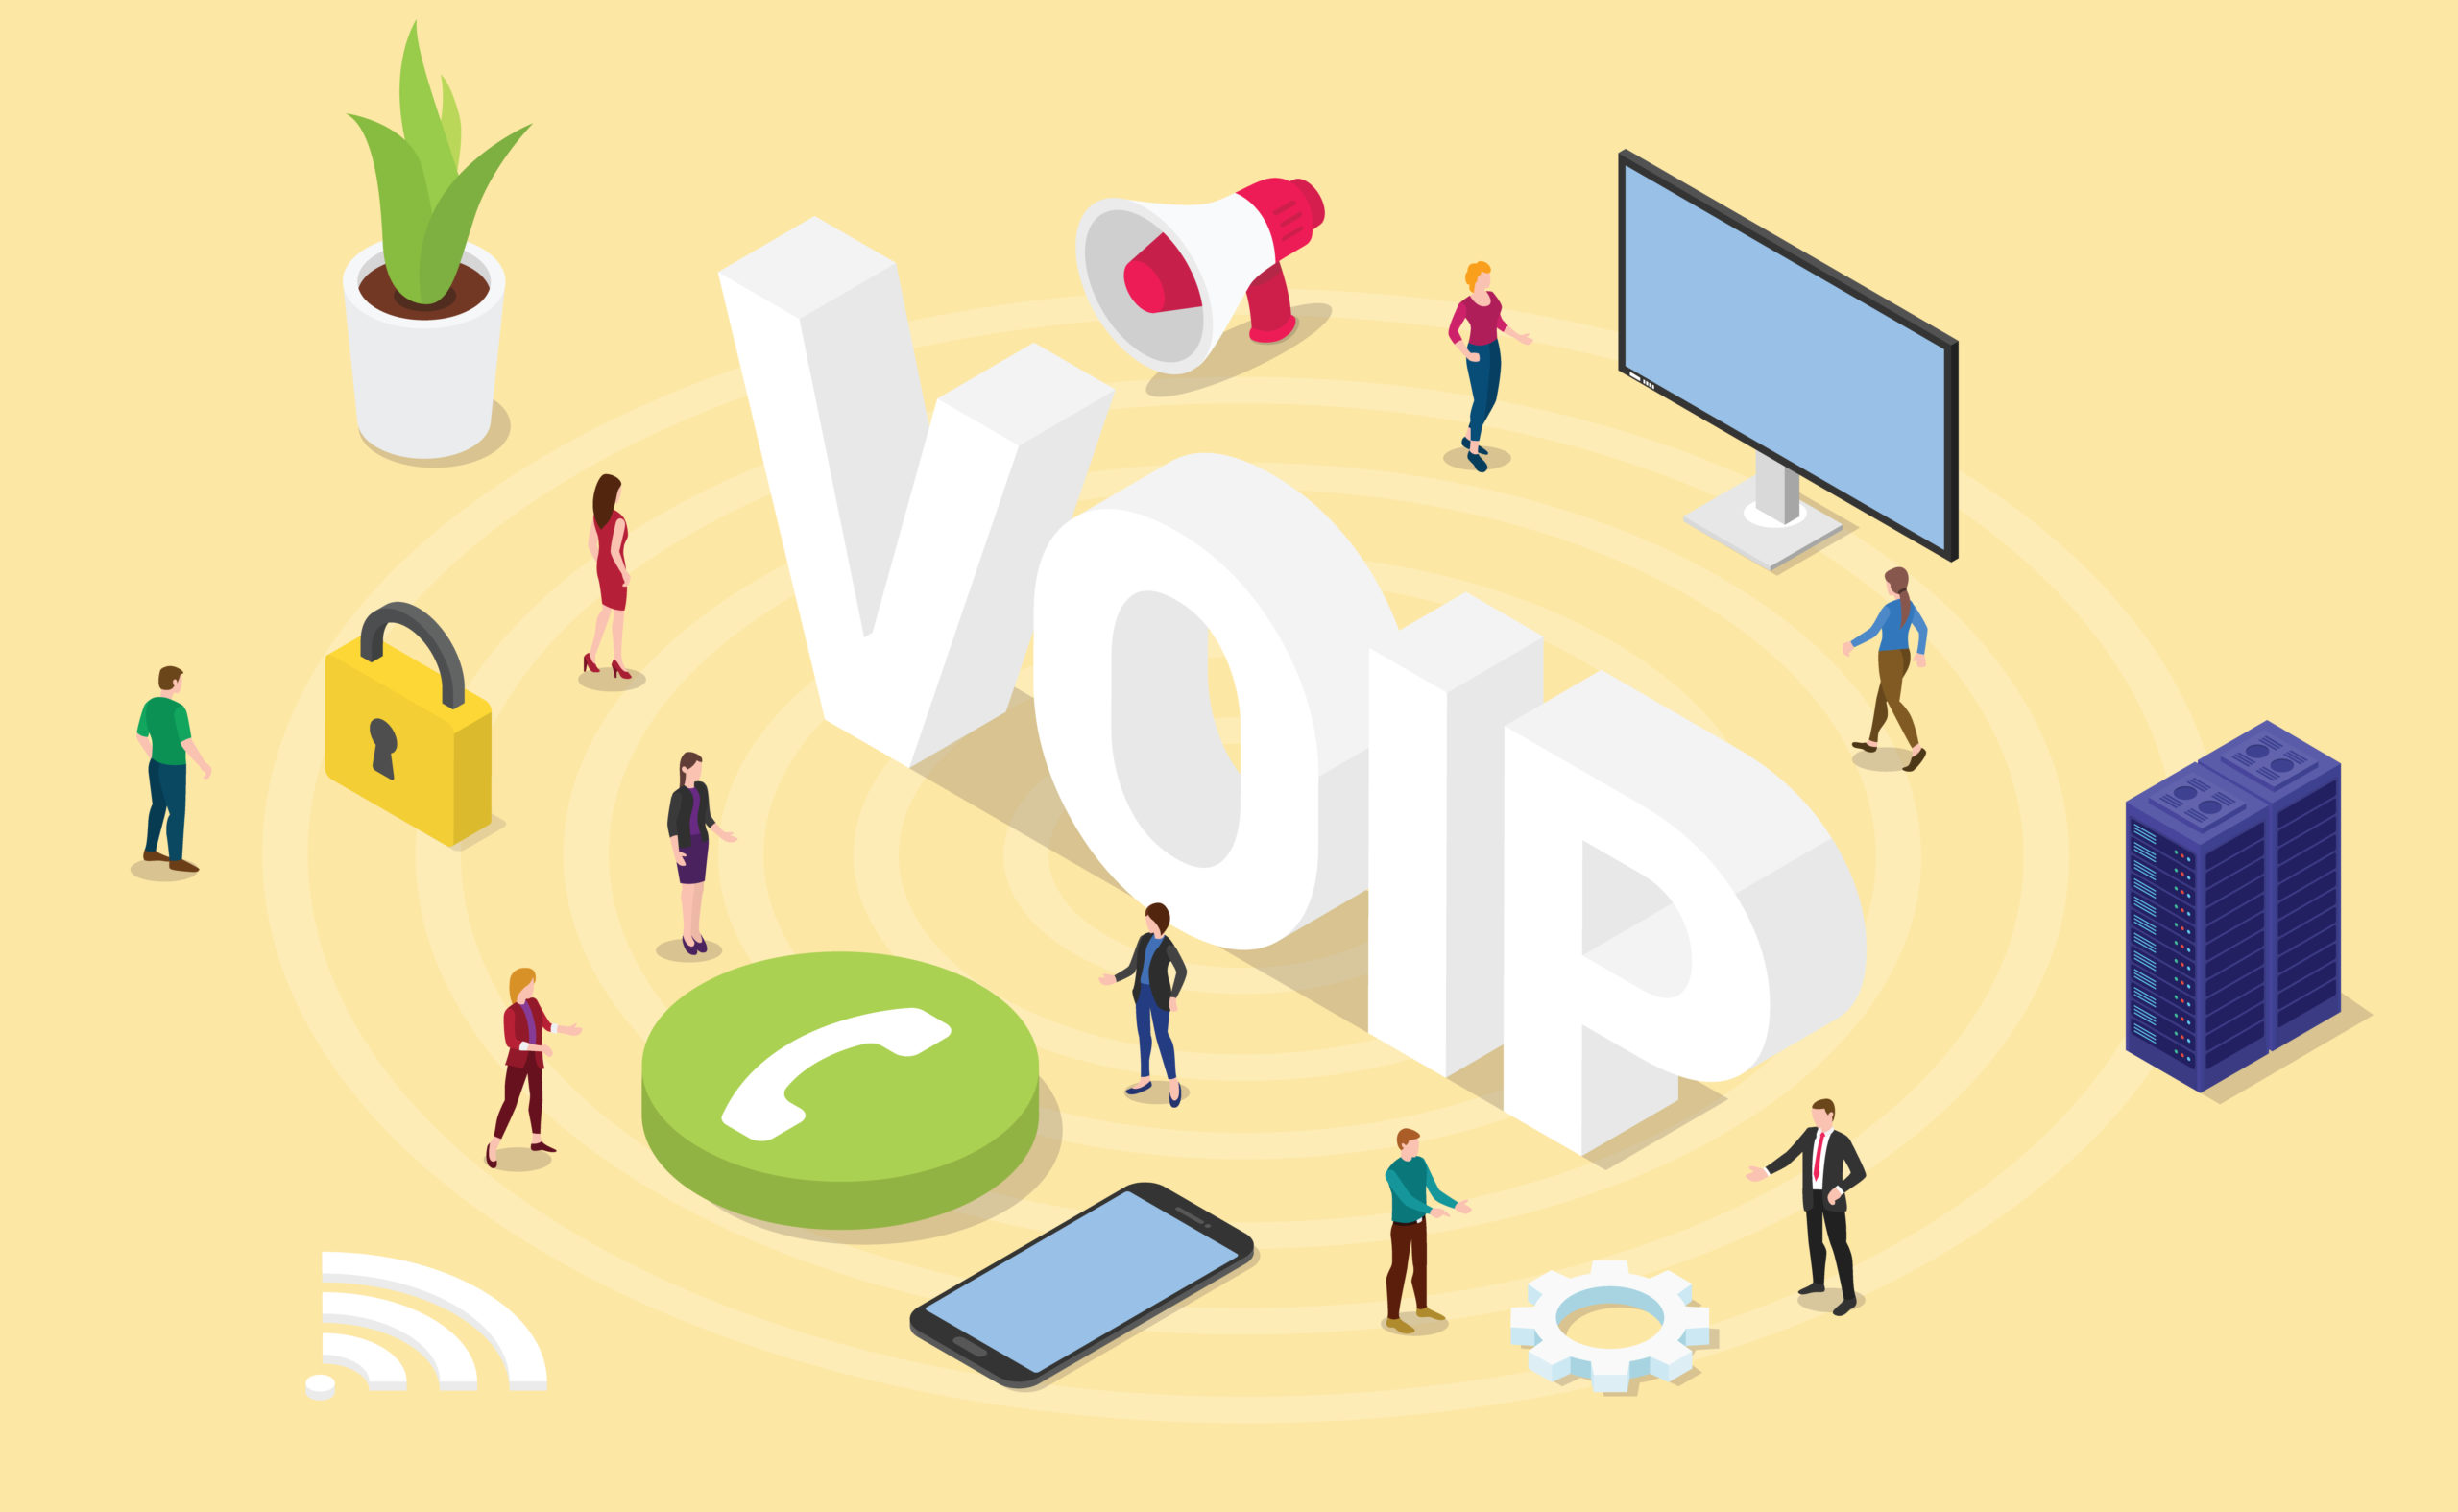 Upcision's Demand Generation Campaign Gained 222 New Phone Lines for Leading VoIP Phone Company over 90 Days